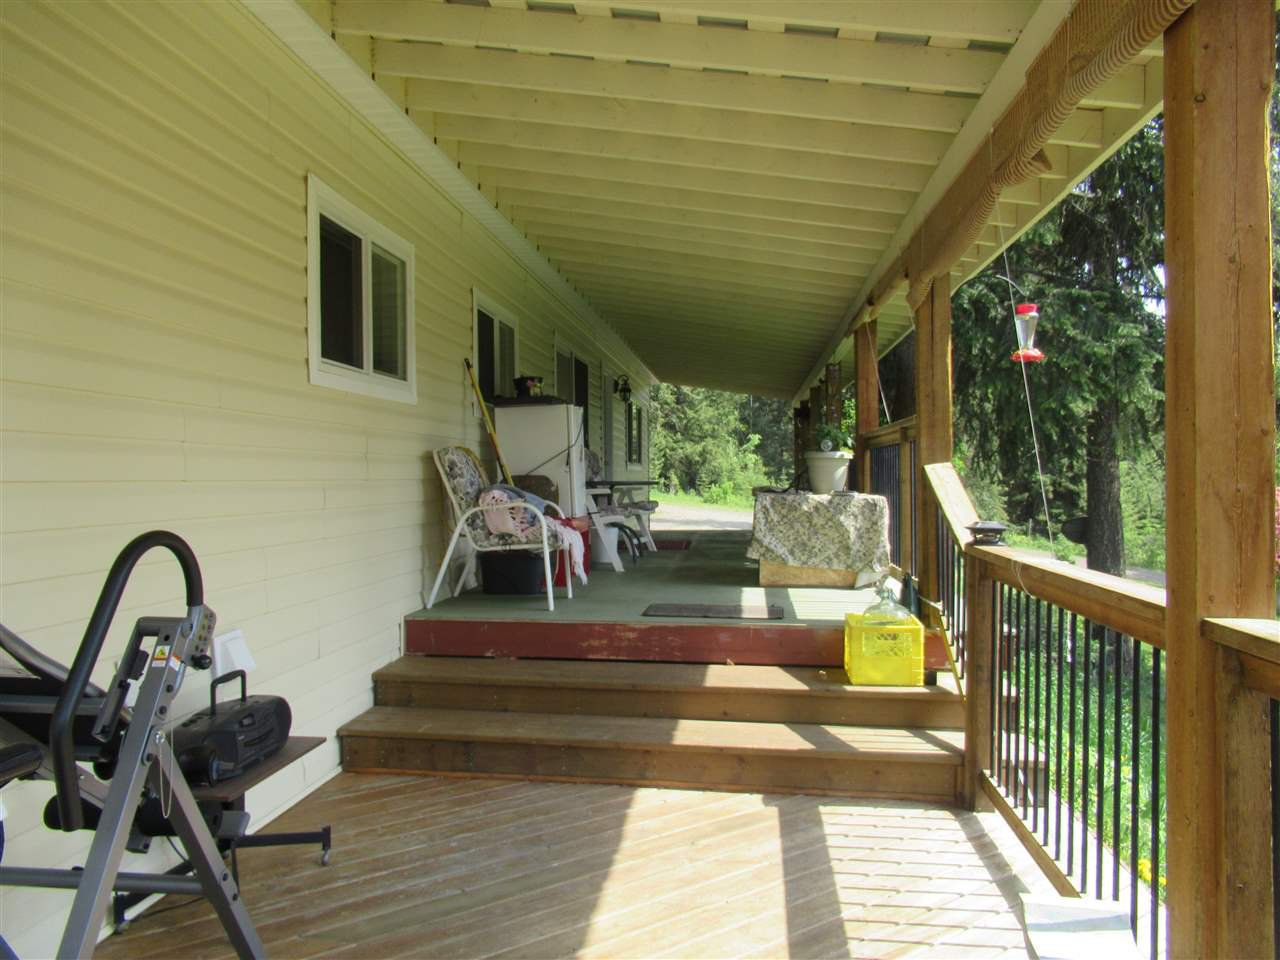 Photo 14: Photos: 1224 DESAUTEL Road in Williams Lake: Williams Lake - Rural East Manufactured Home for sale (Williams Lake (Zone 27))  : MLS®# R2376873